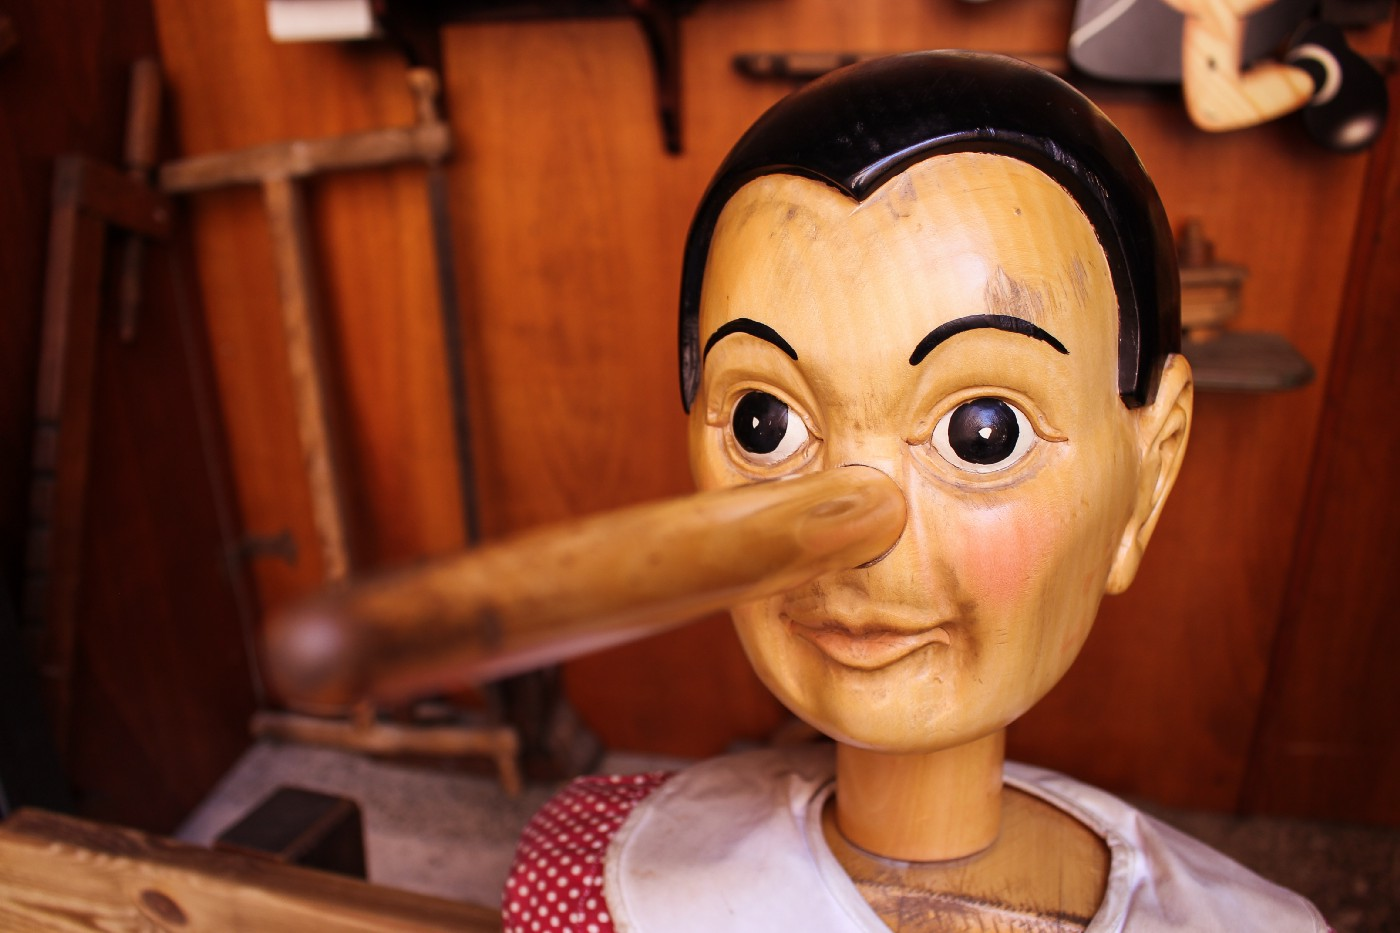 This is a picture of Pinocchio.